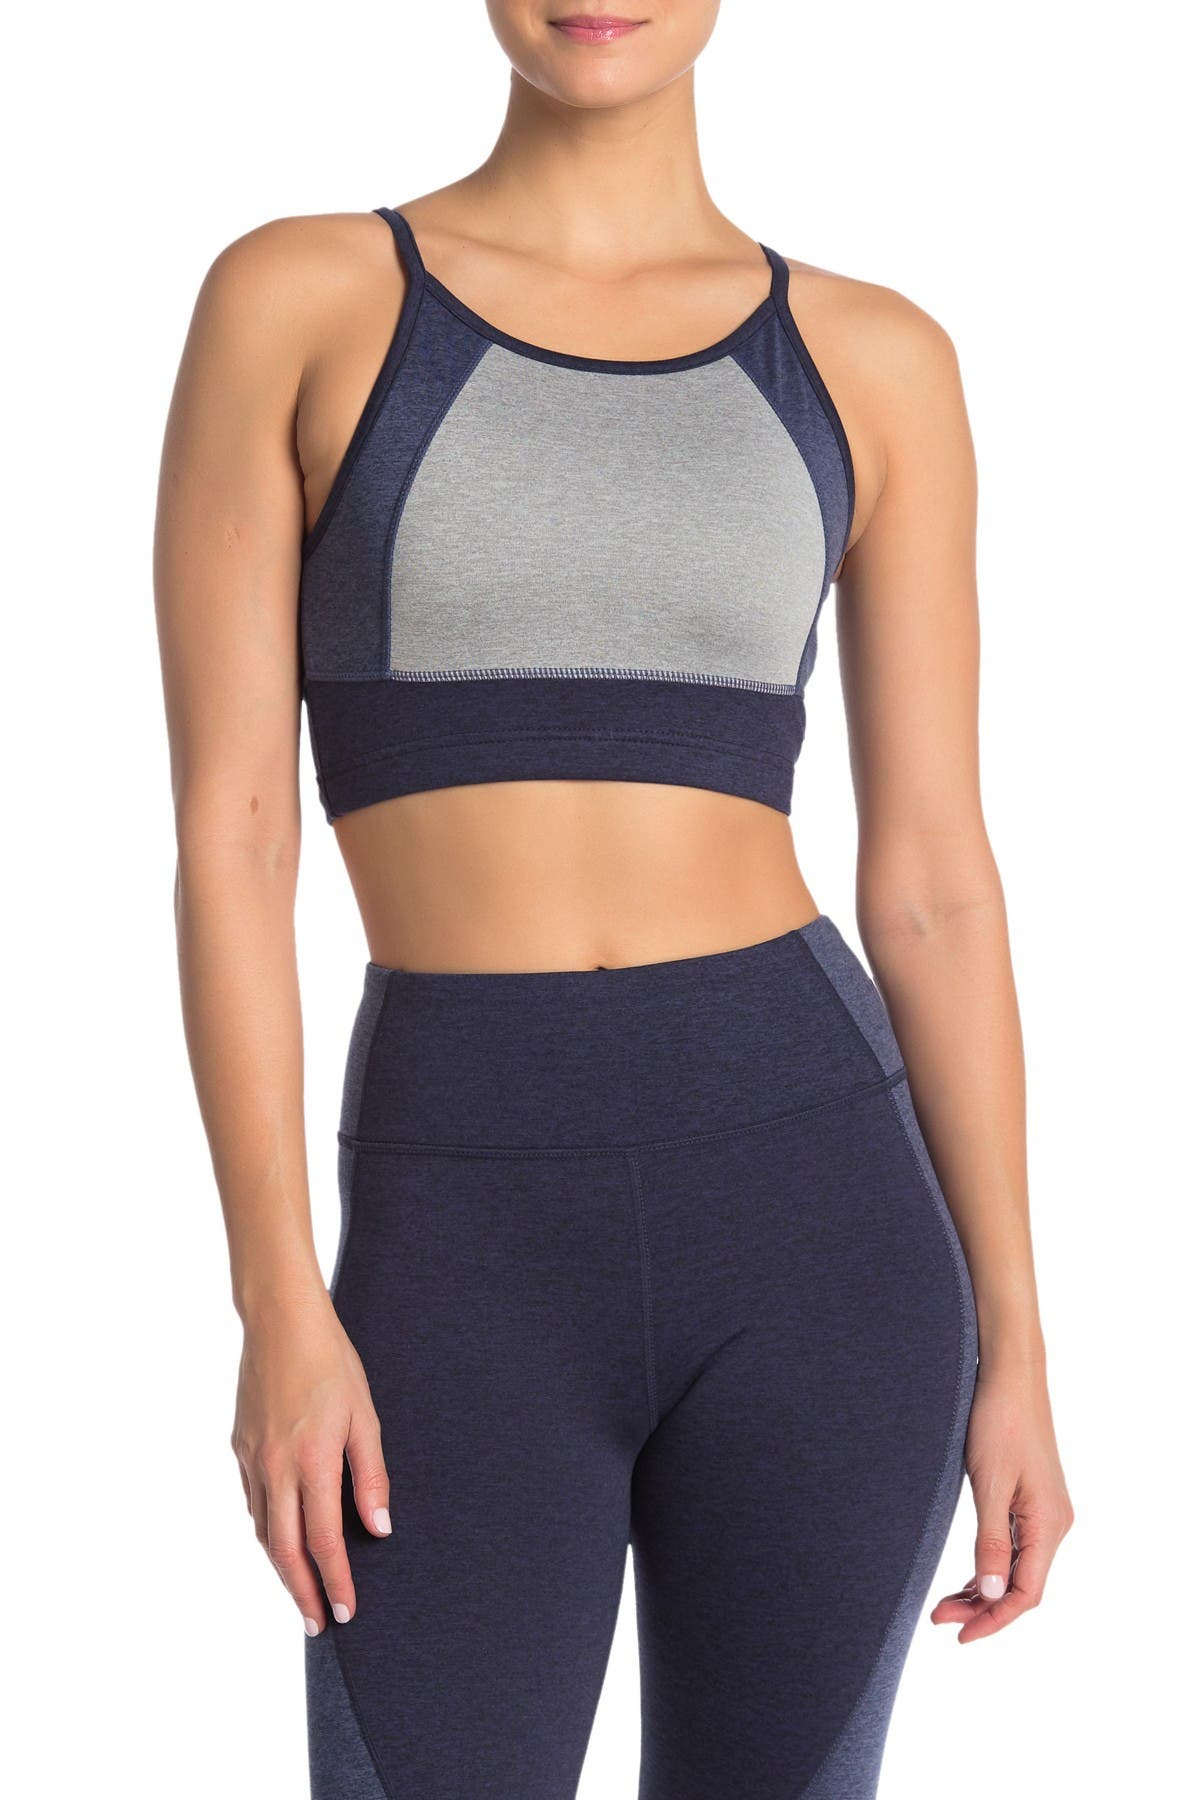 Image of Threads 4 Thought Balance Sports Bra